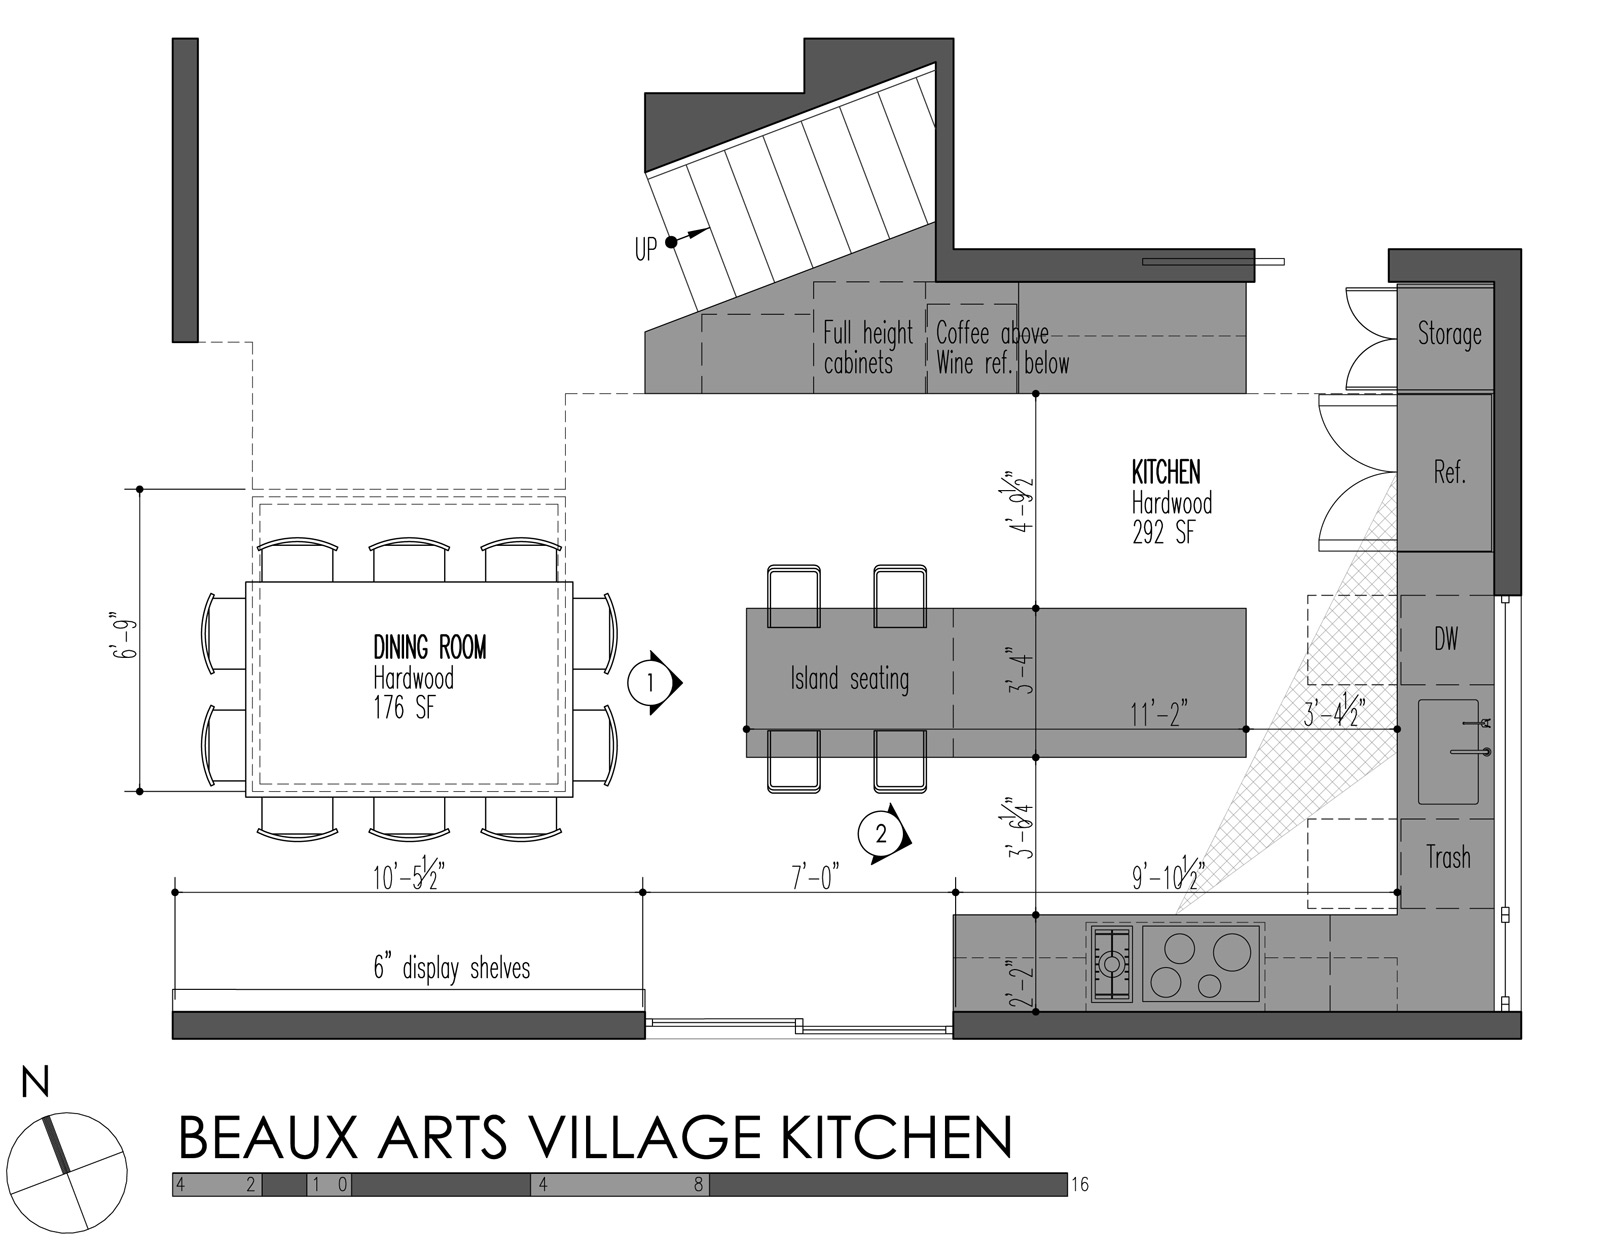 5 modern kitchen designs principles kitchen cabinet dimensions BUILD LLC Beaux Arts Village Kitchen plan